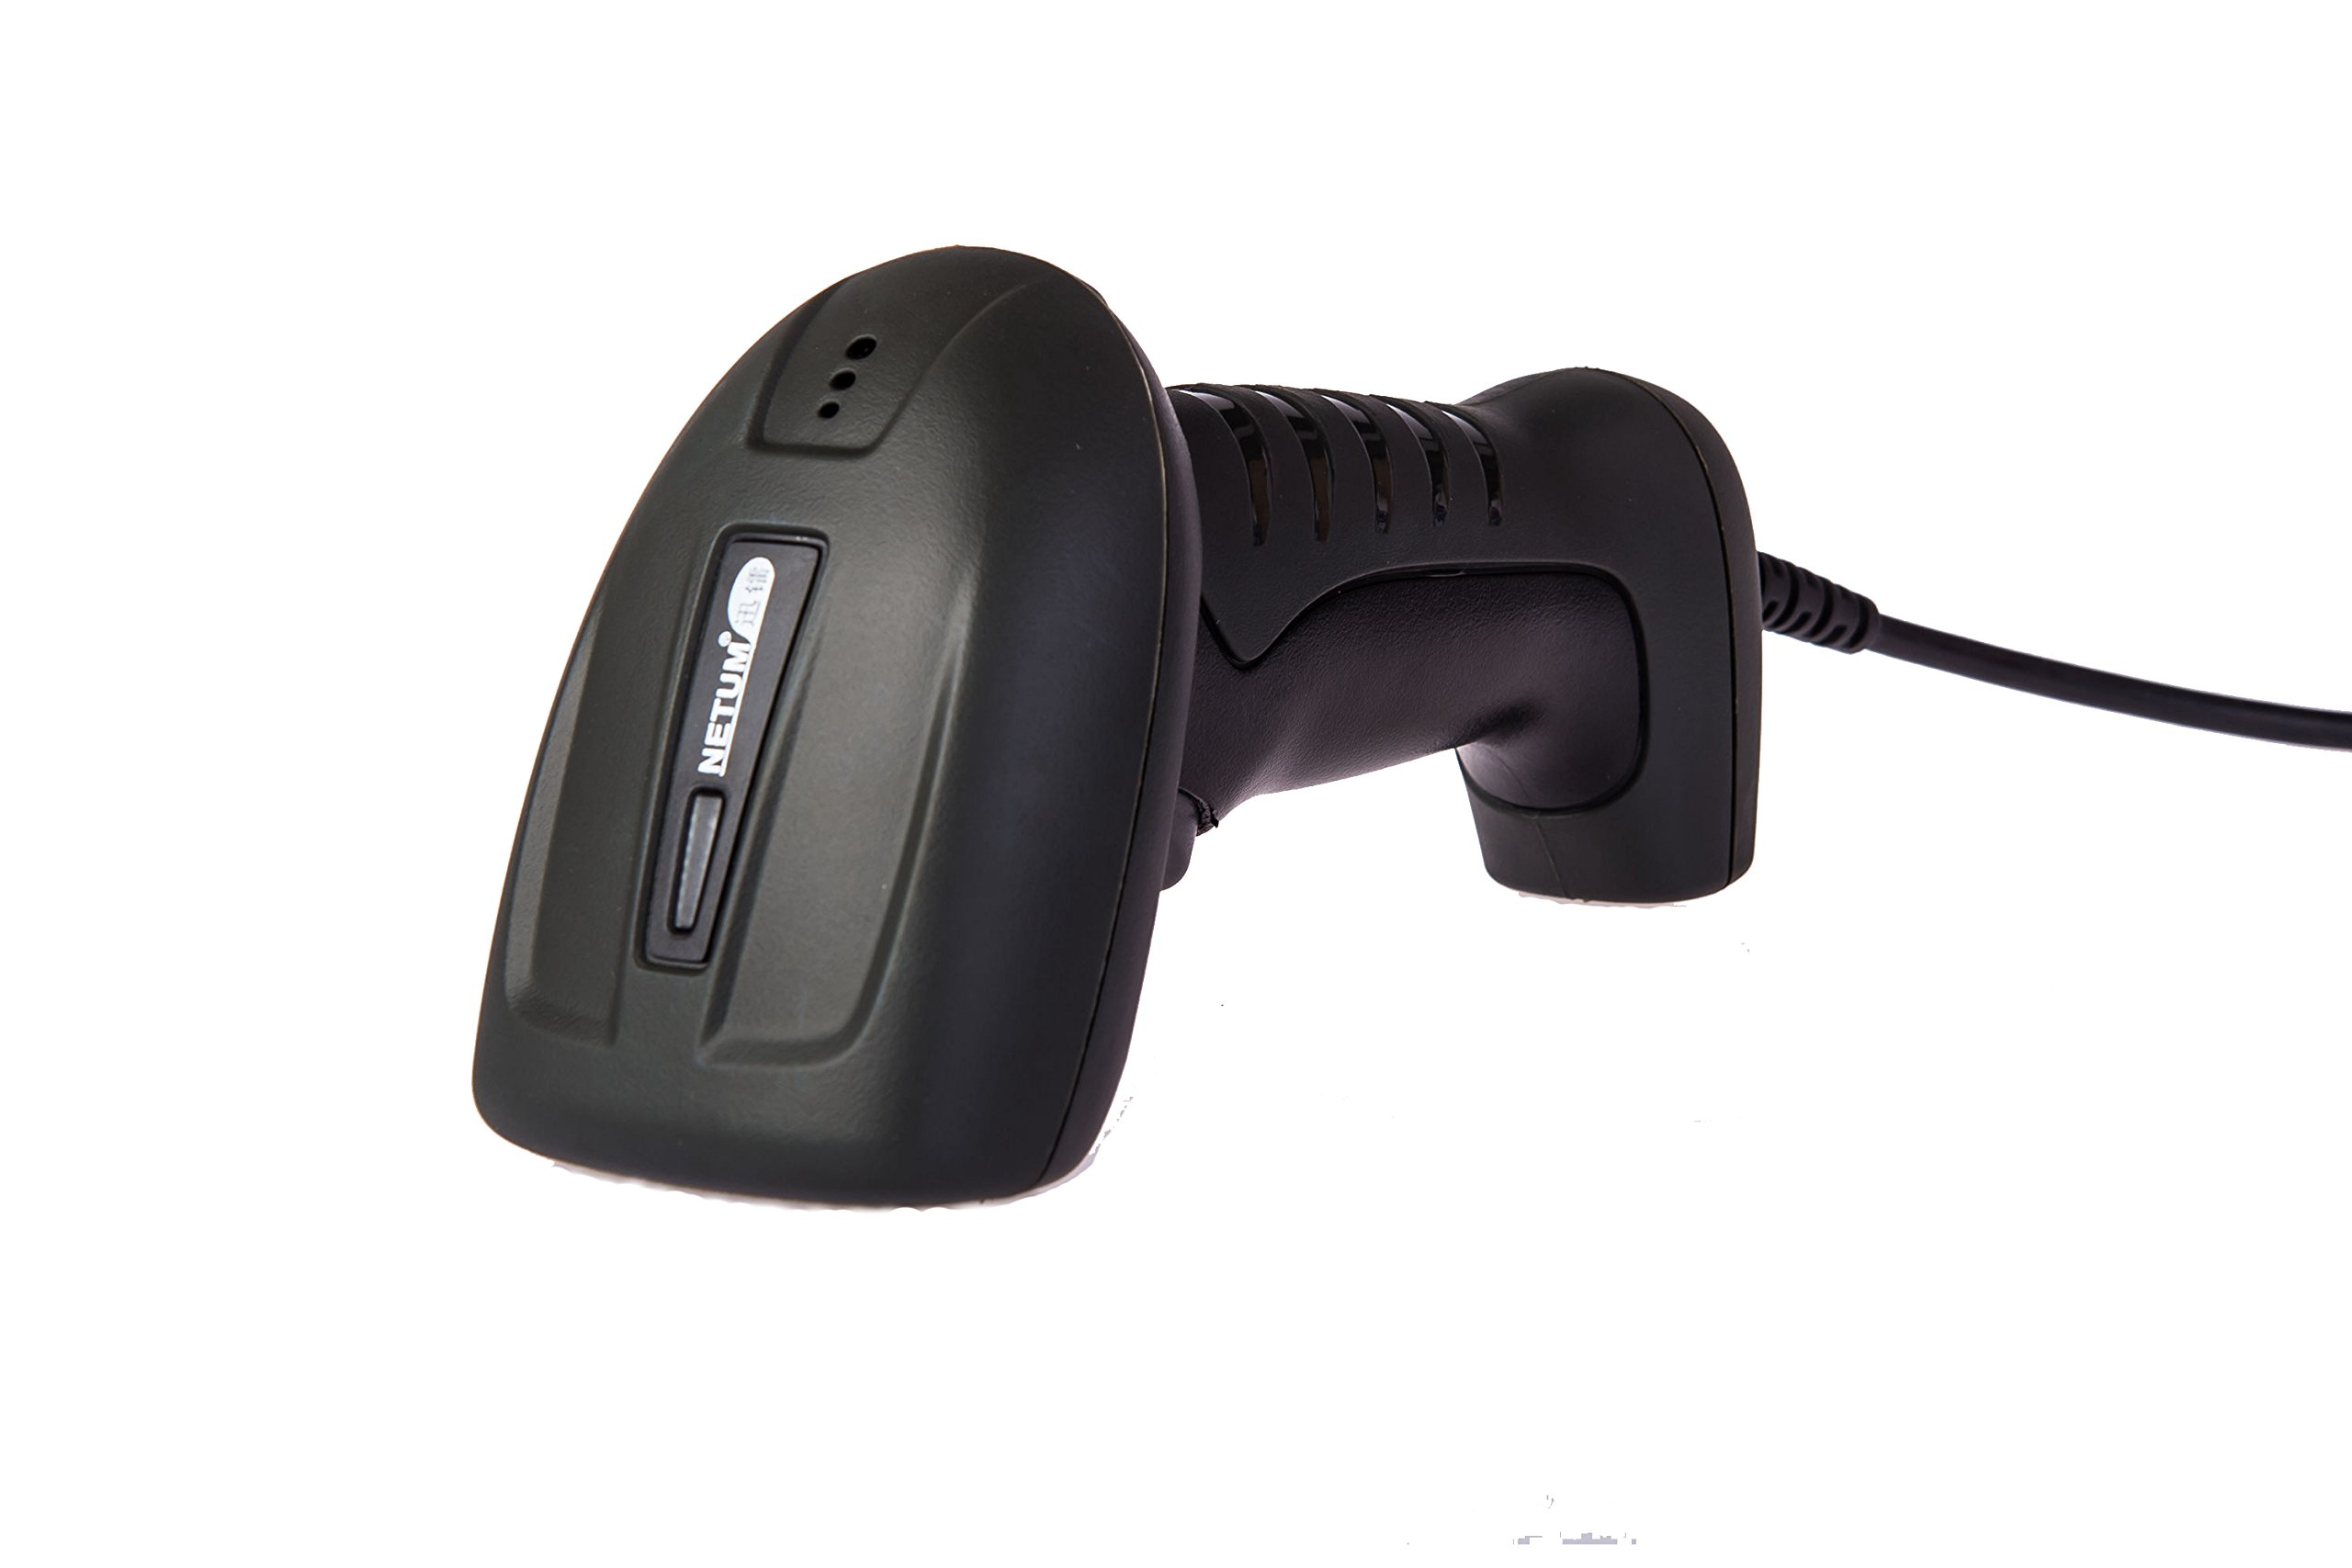 NETUM Wired 32 Bit USB Laser Scan Barcode Scanner Bar Code Reader Black Hand Held